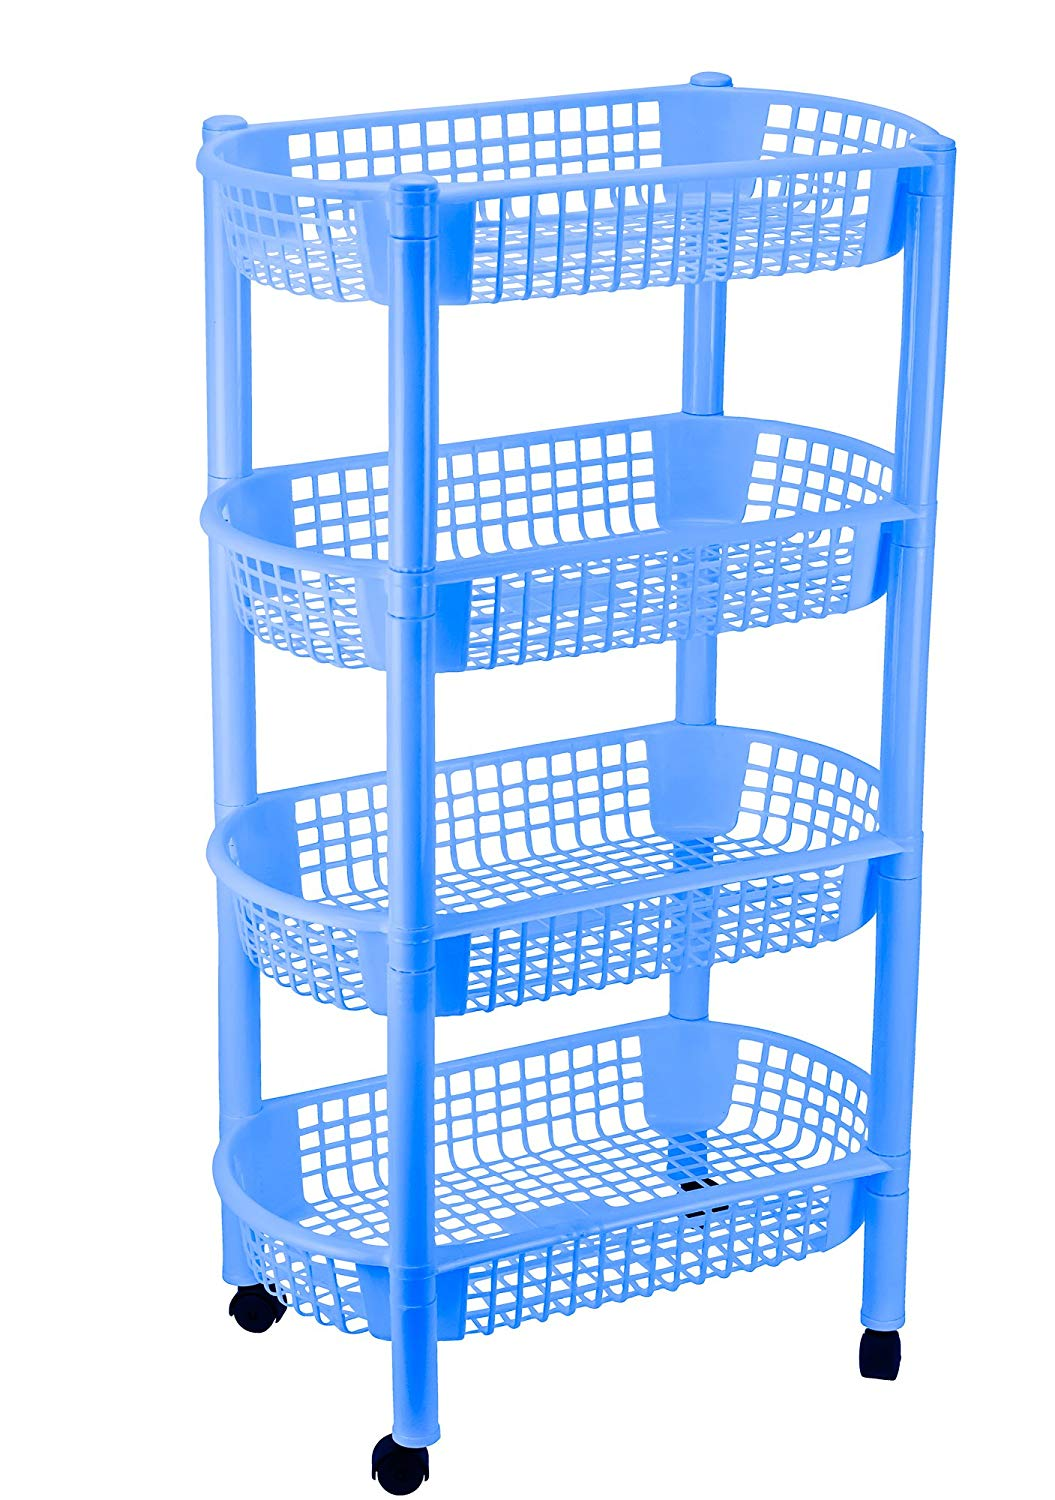 DecorRack Kitchen Storage Rack, 4-Tier Wheeled Plastic Wicker Mesh Basket Shelving Trolley, Rolling Kitchen Storage Cart with Shelves on Wheels for Vegetable and Fruit Storage, Blue Color